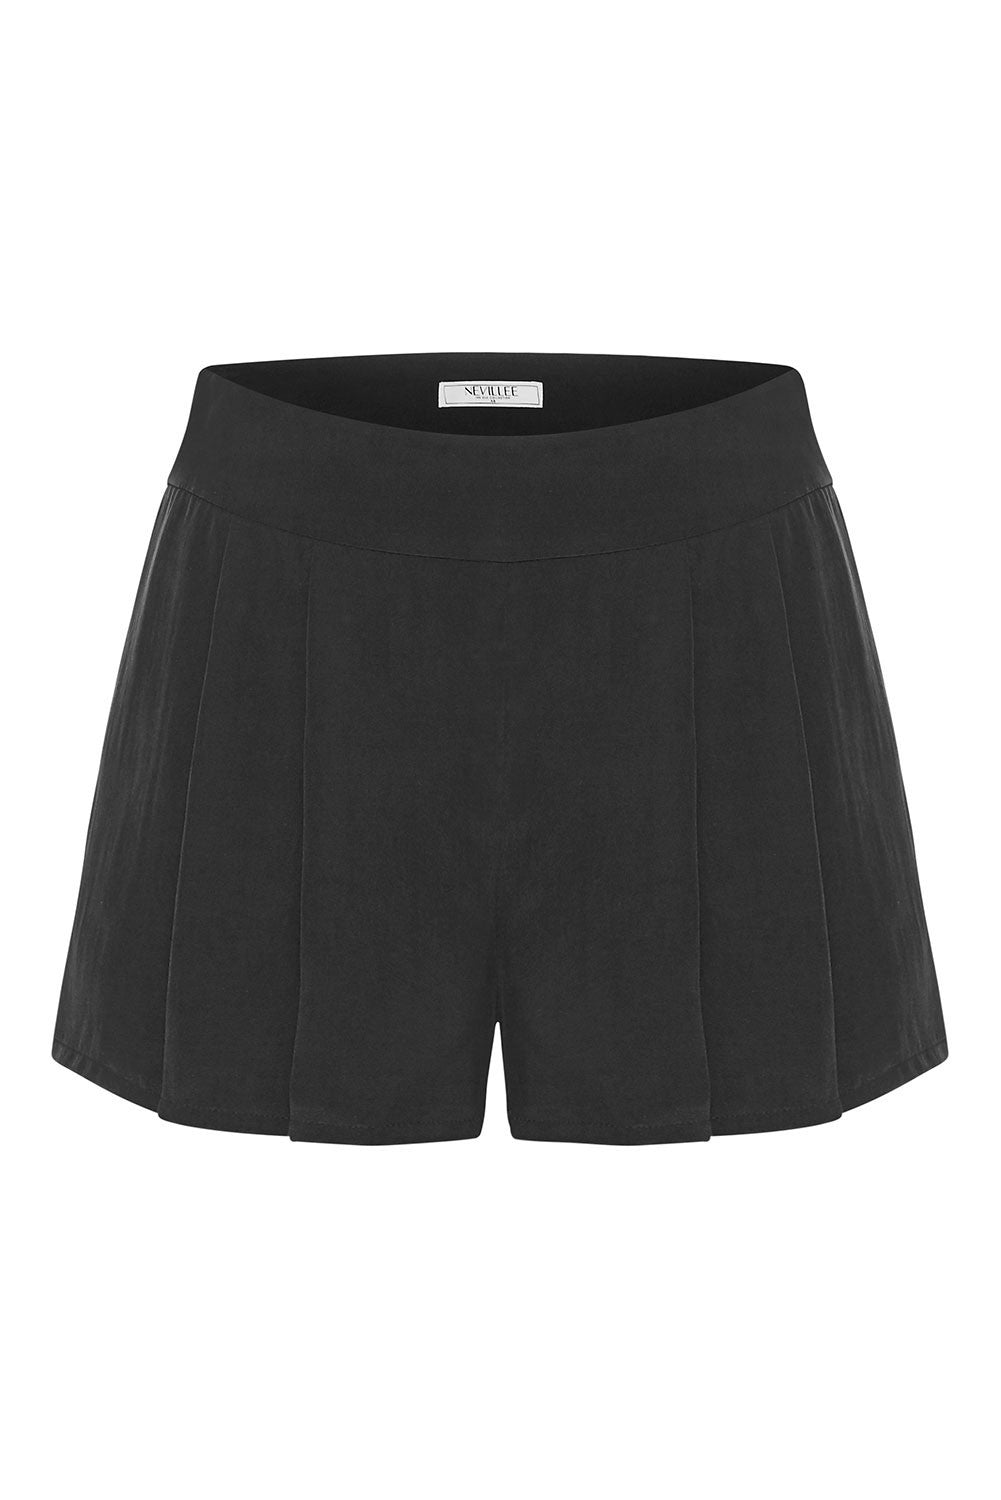 SILK SHORTS - BLACKSTONE